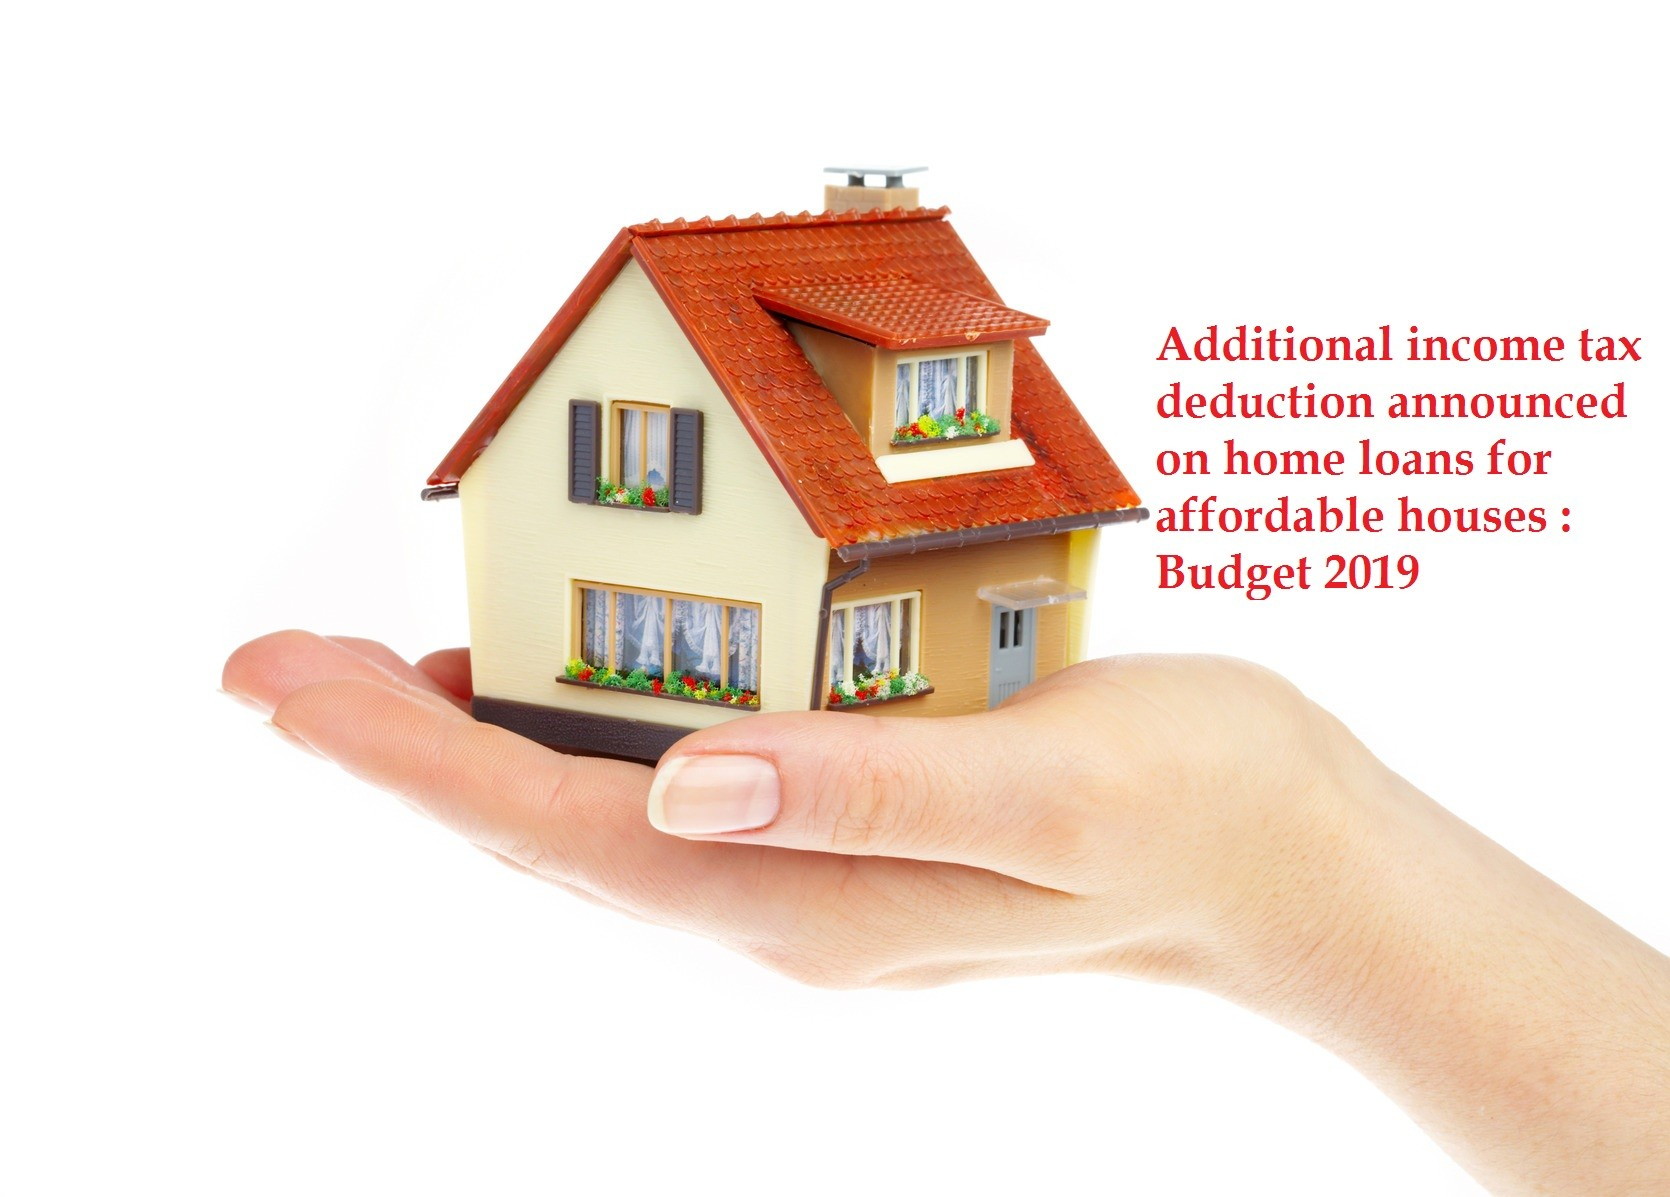 Additional income tax deduction announced on home loans for affordable houses : Budget 2019